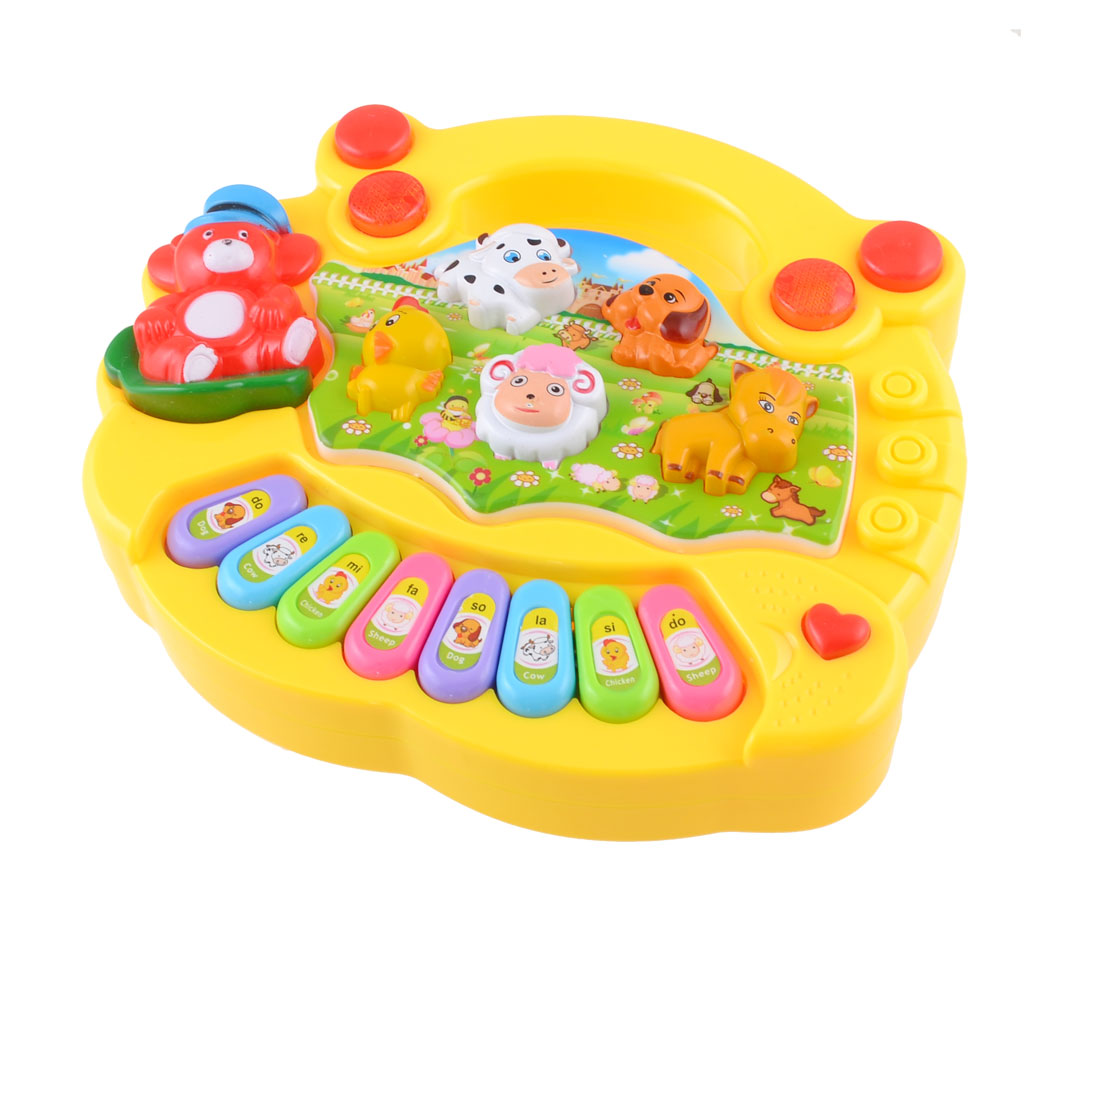 Toddler Baby Handheld Red LED Light Plastic 8 Keys 5 Animal Suond Electric Organ Toy